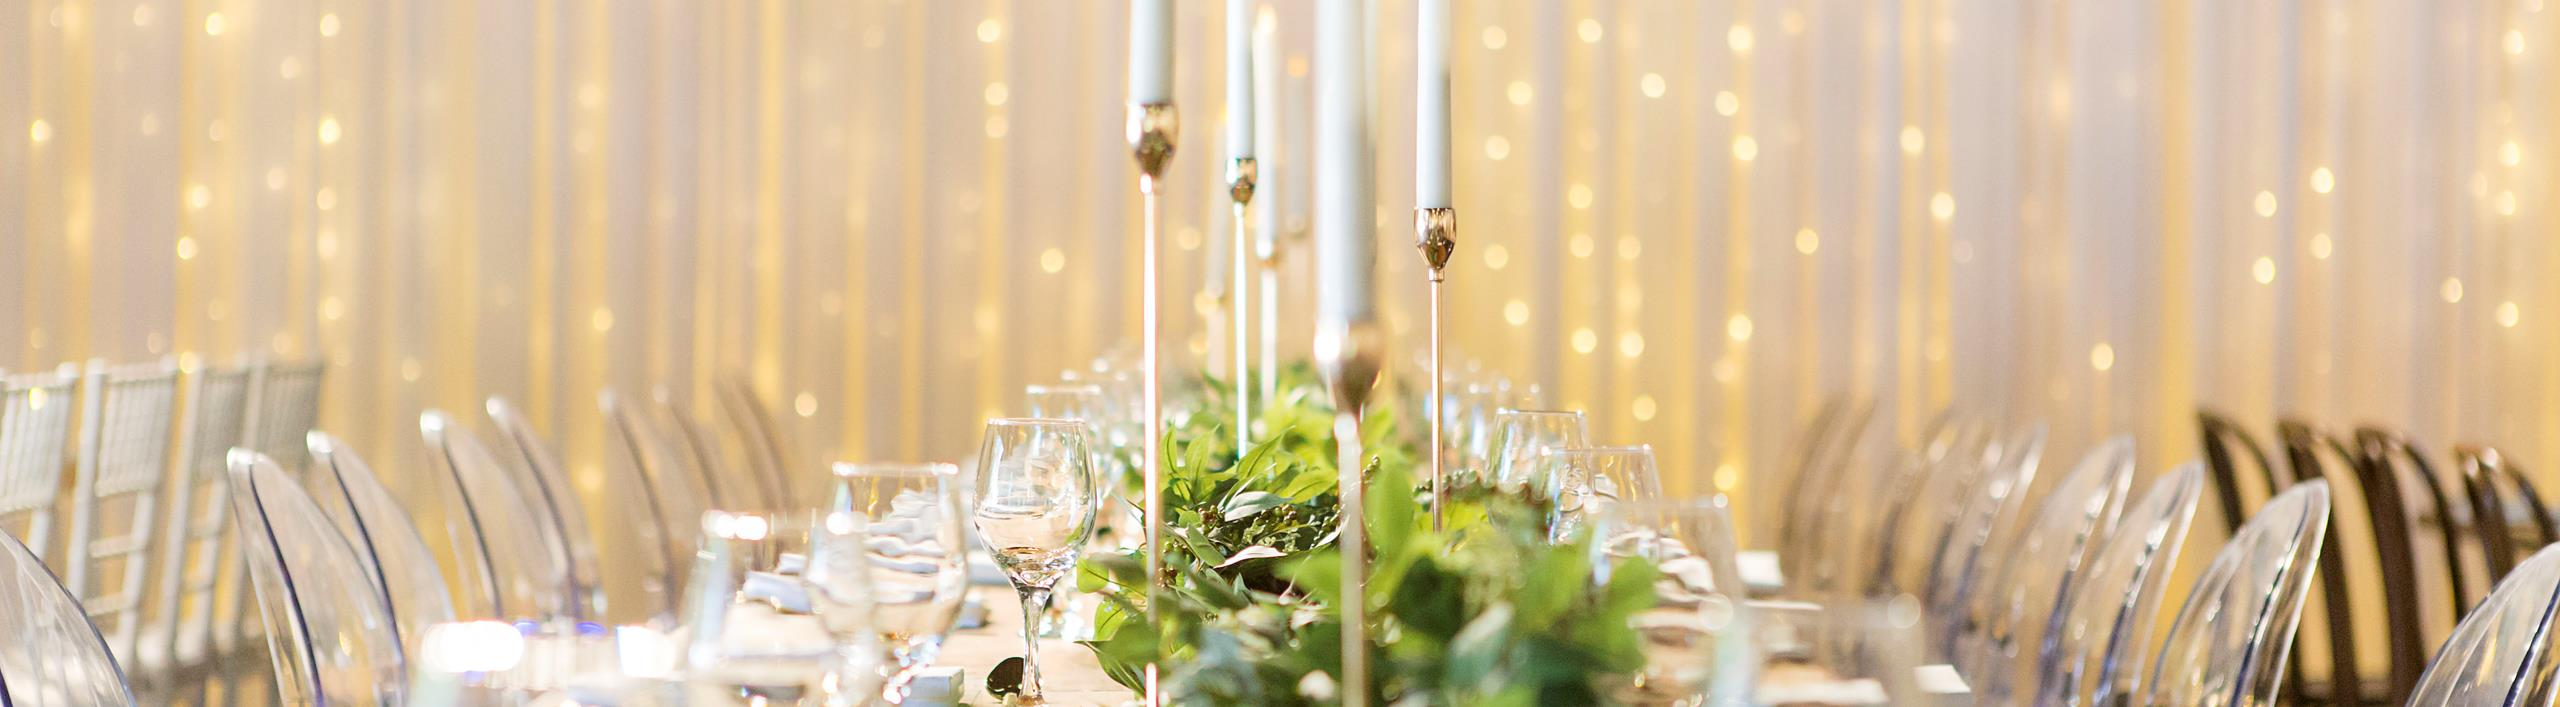 Candles  and elegantly decorated dining table creates a magical setting for a wedding.